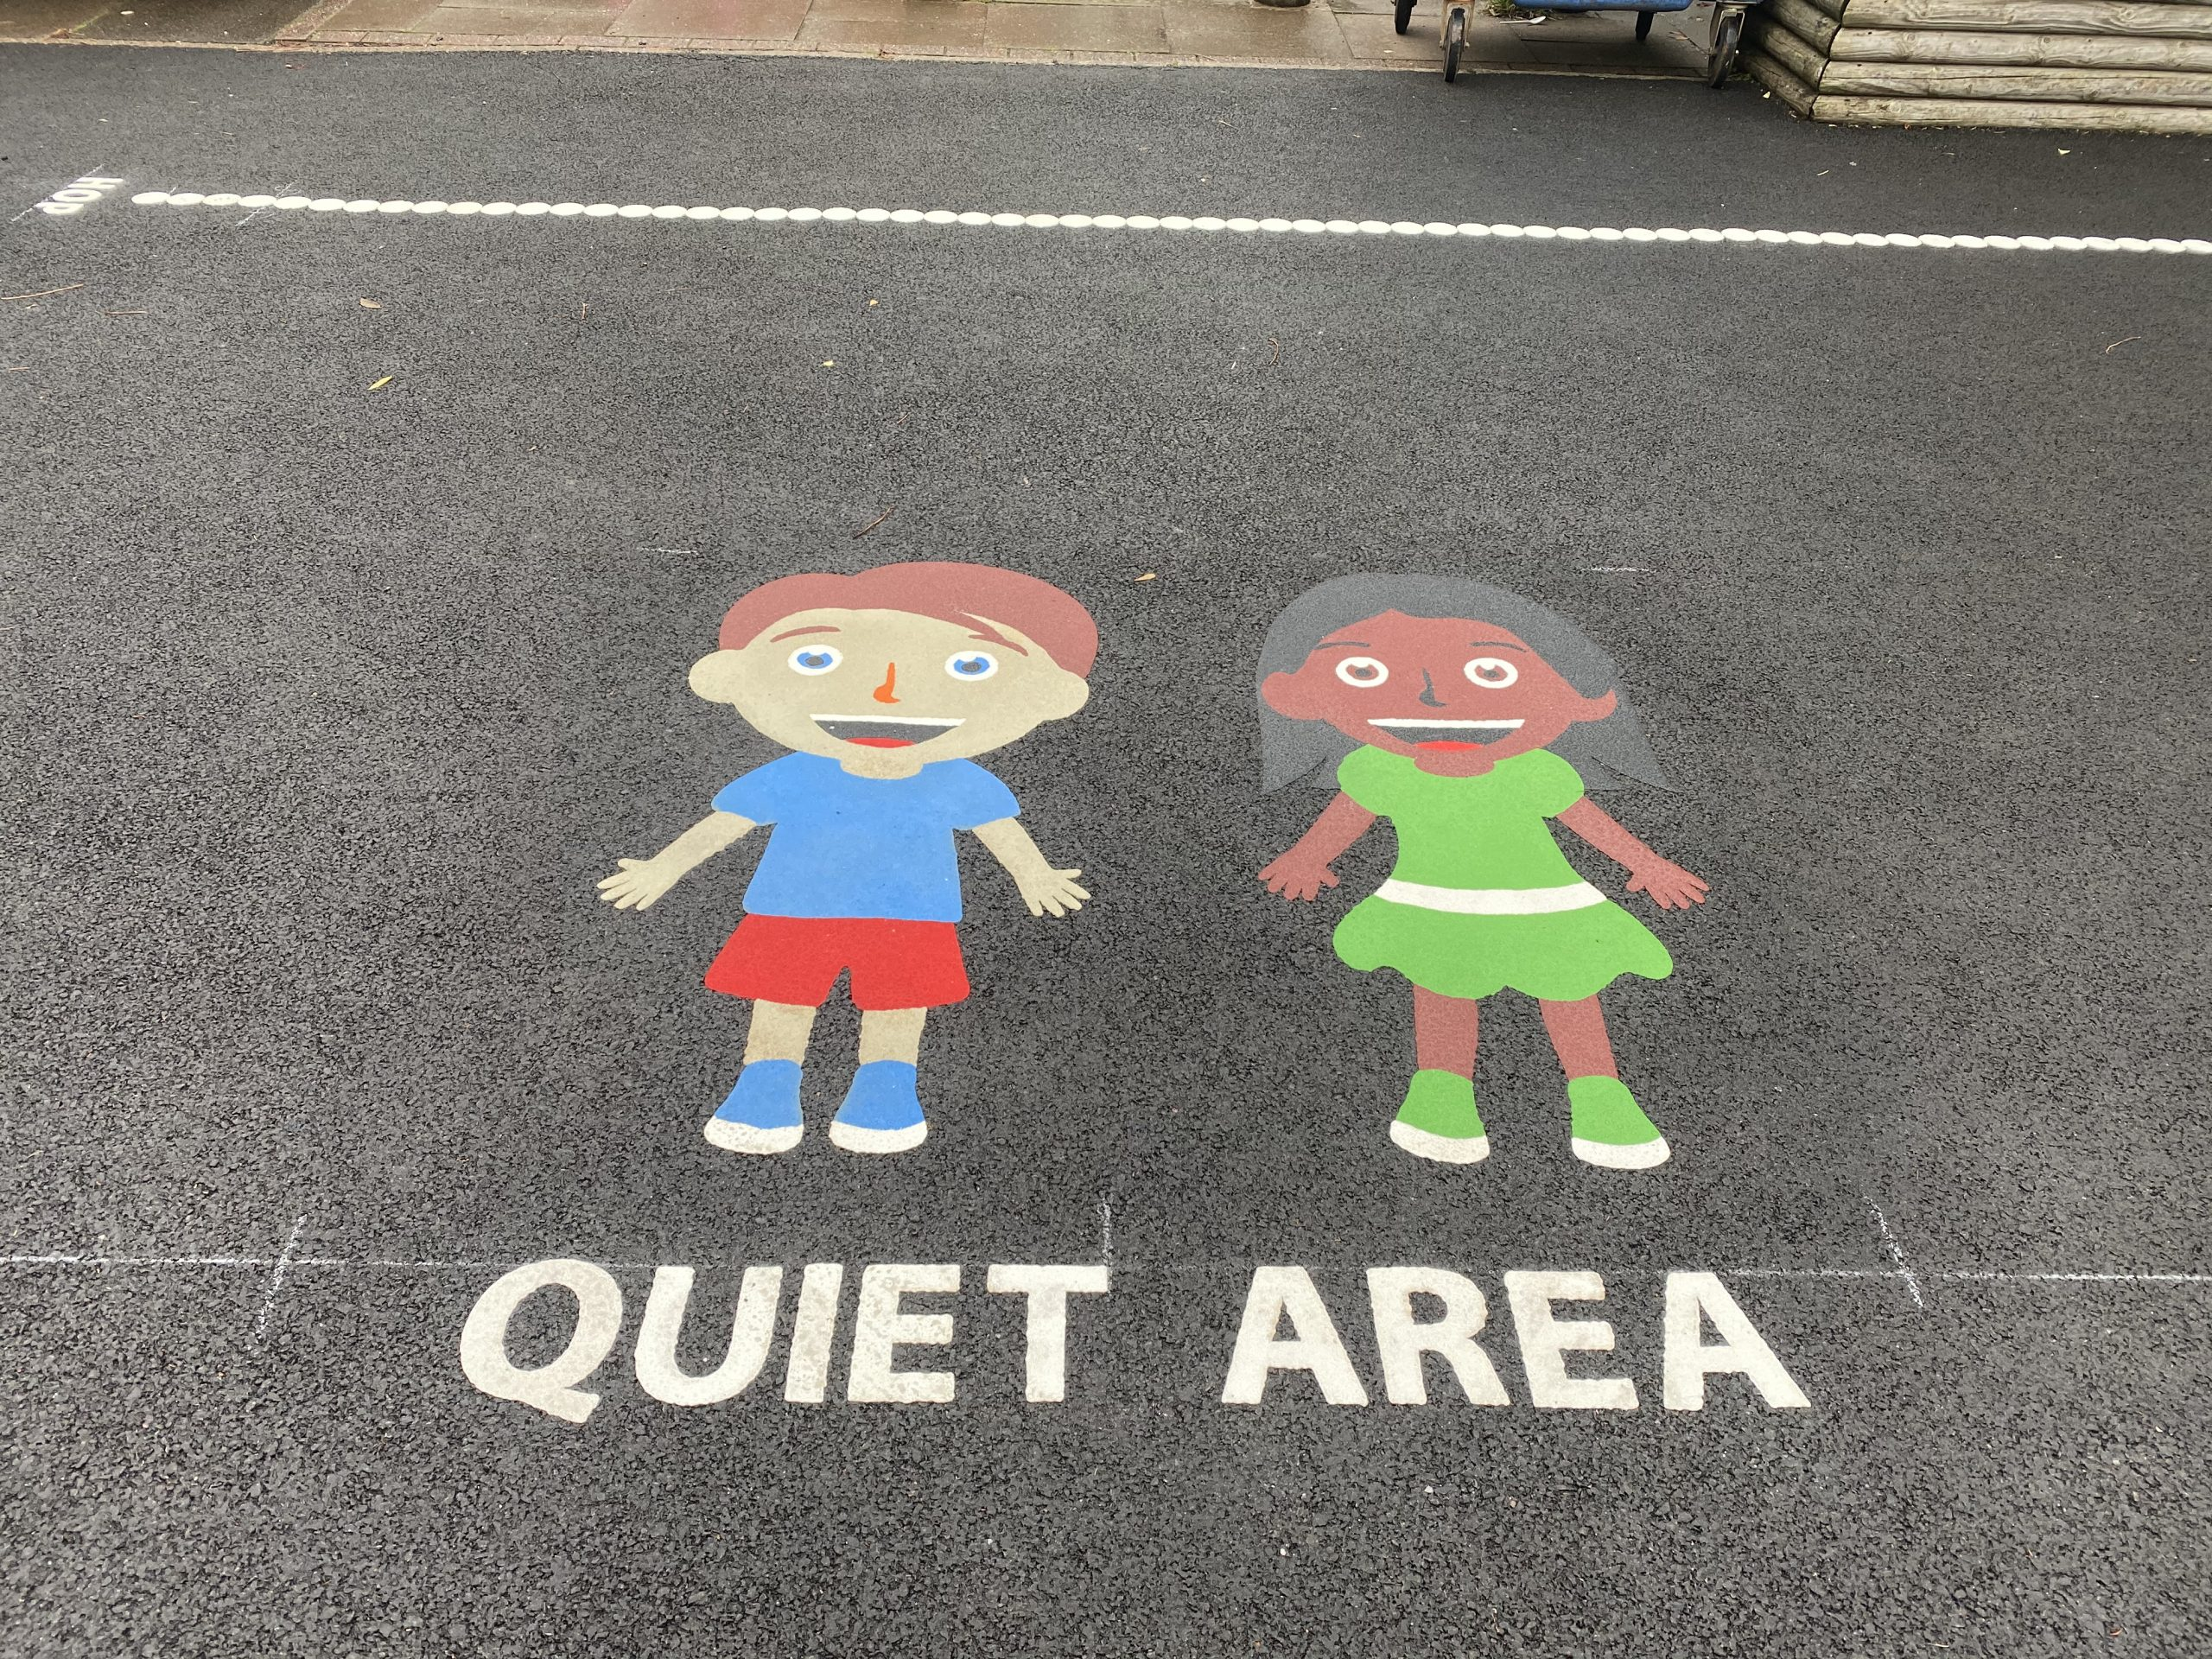 Utilising a small playground with creative designs